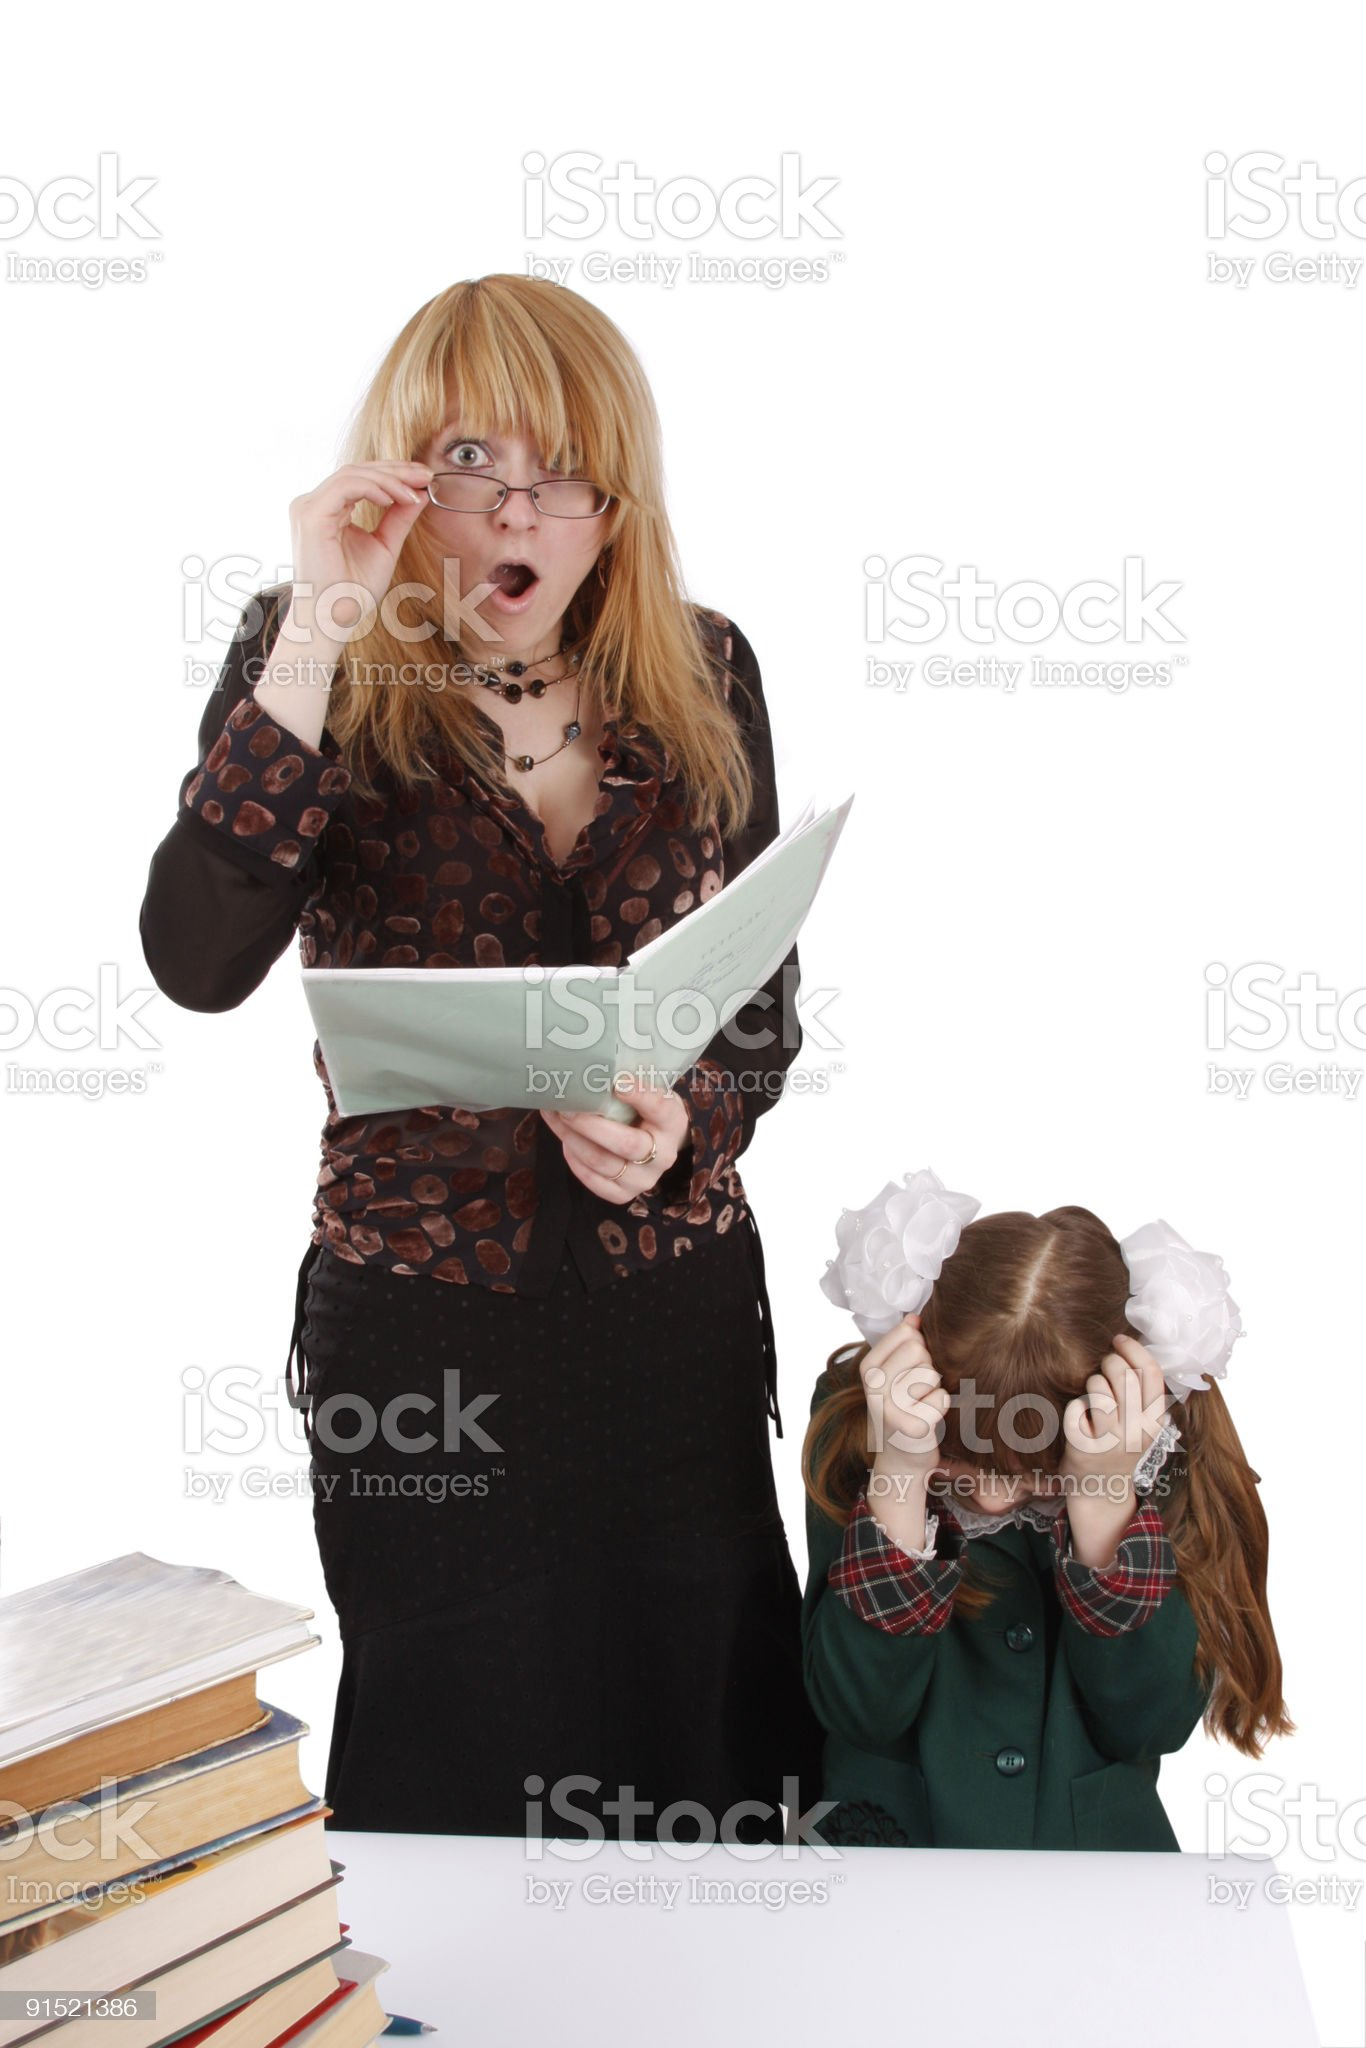 School girl gives teacher a shock. Education. royalty-free stock photo